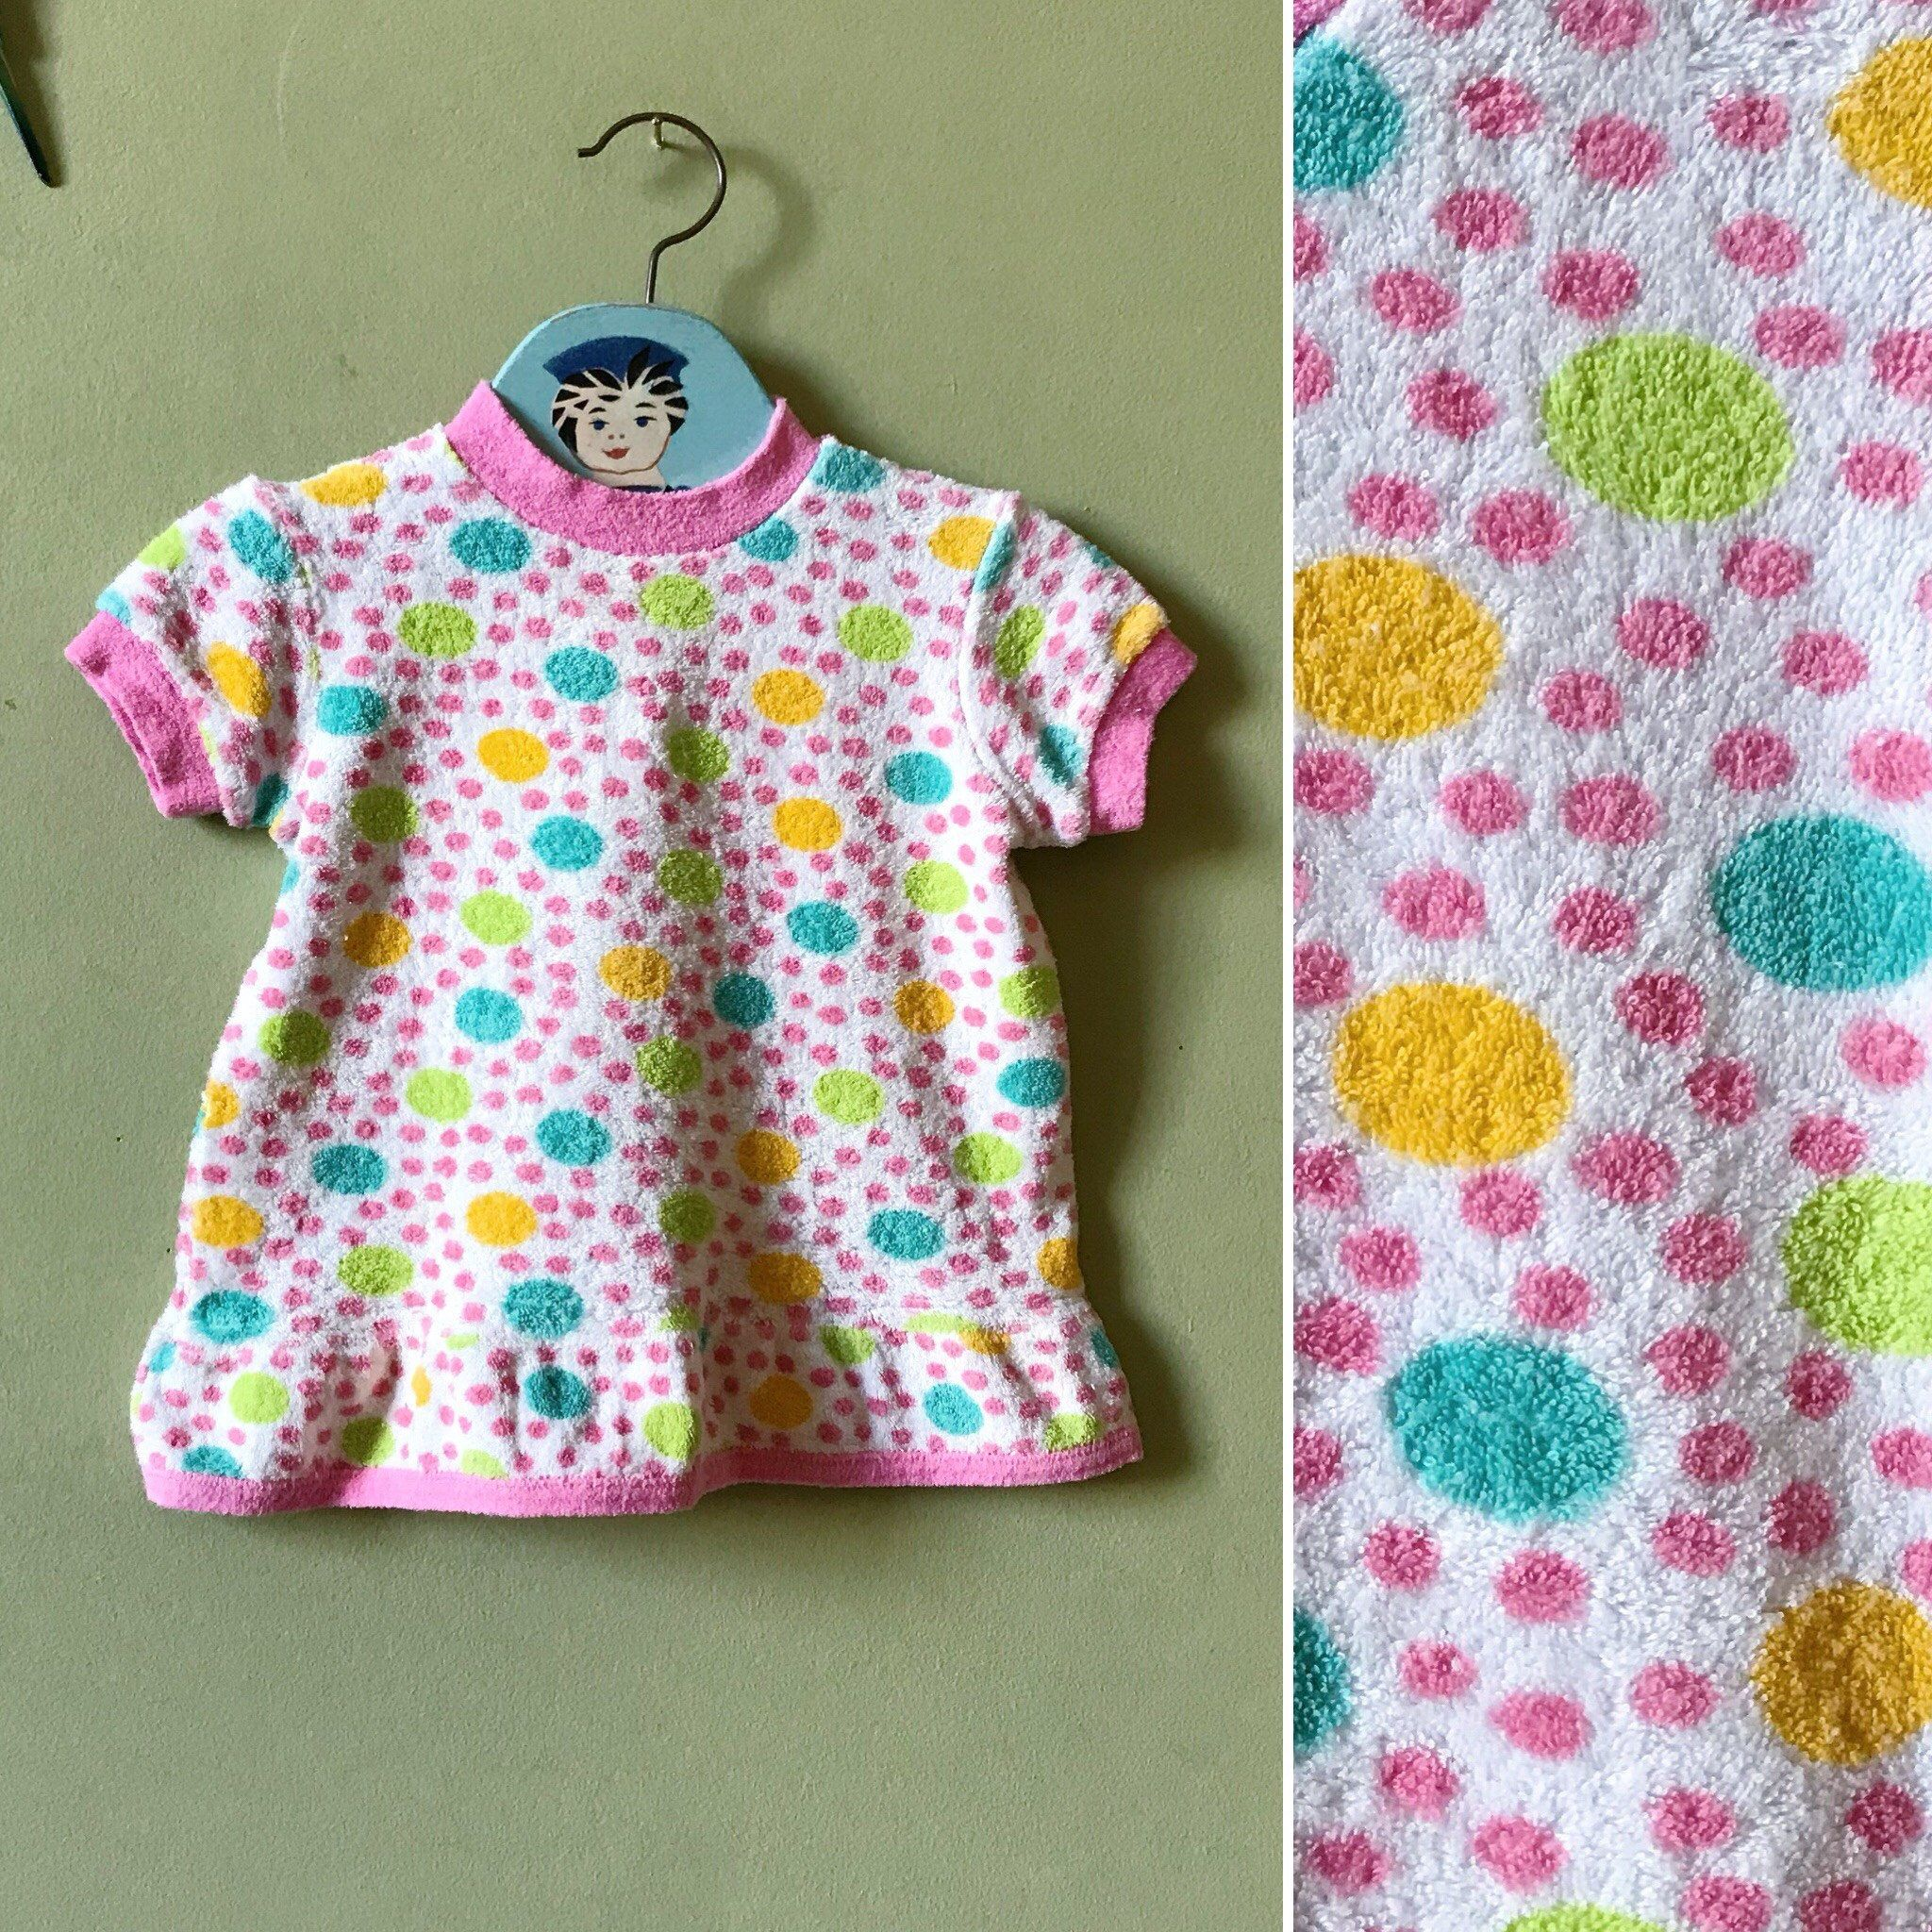 Vintage baby dress girls dress Pink green white spotted spots